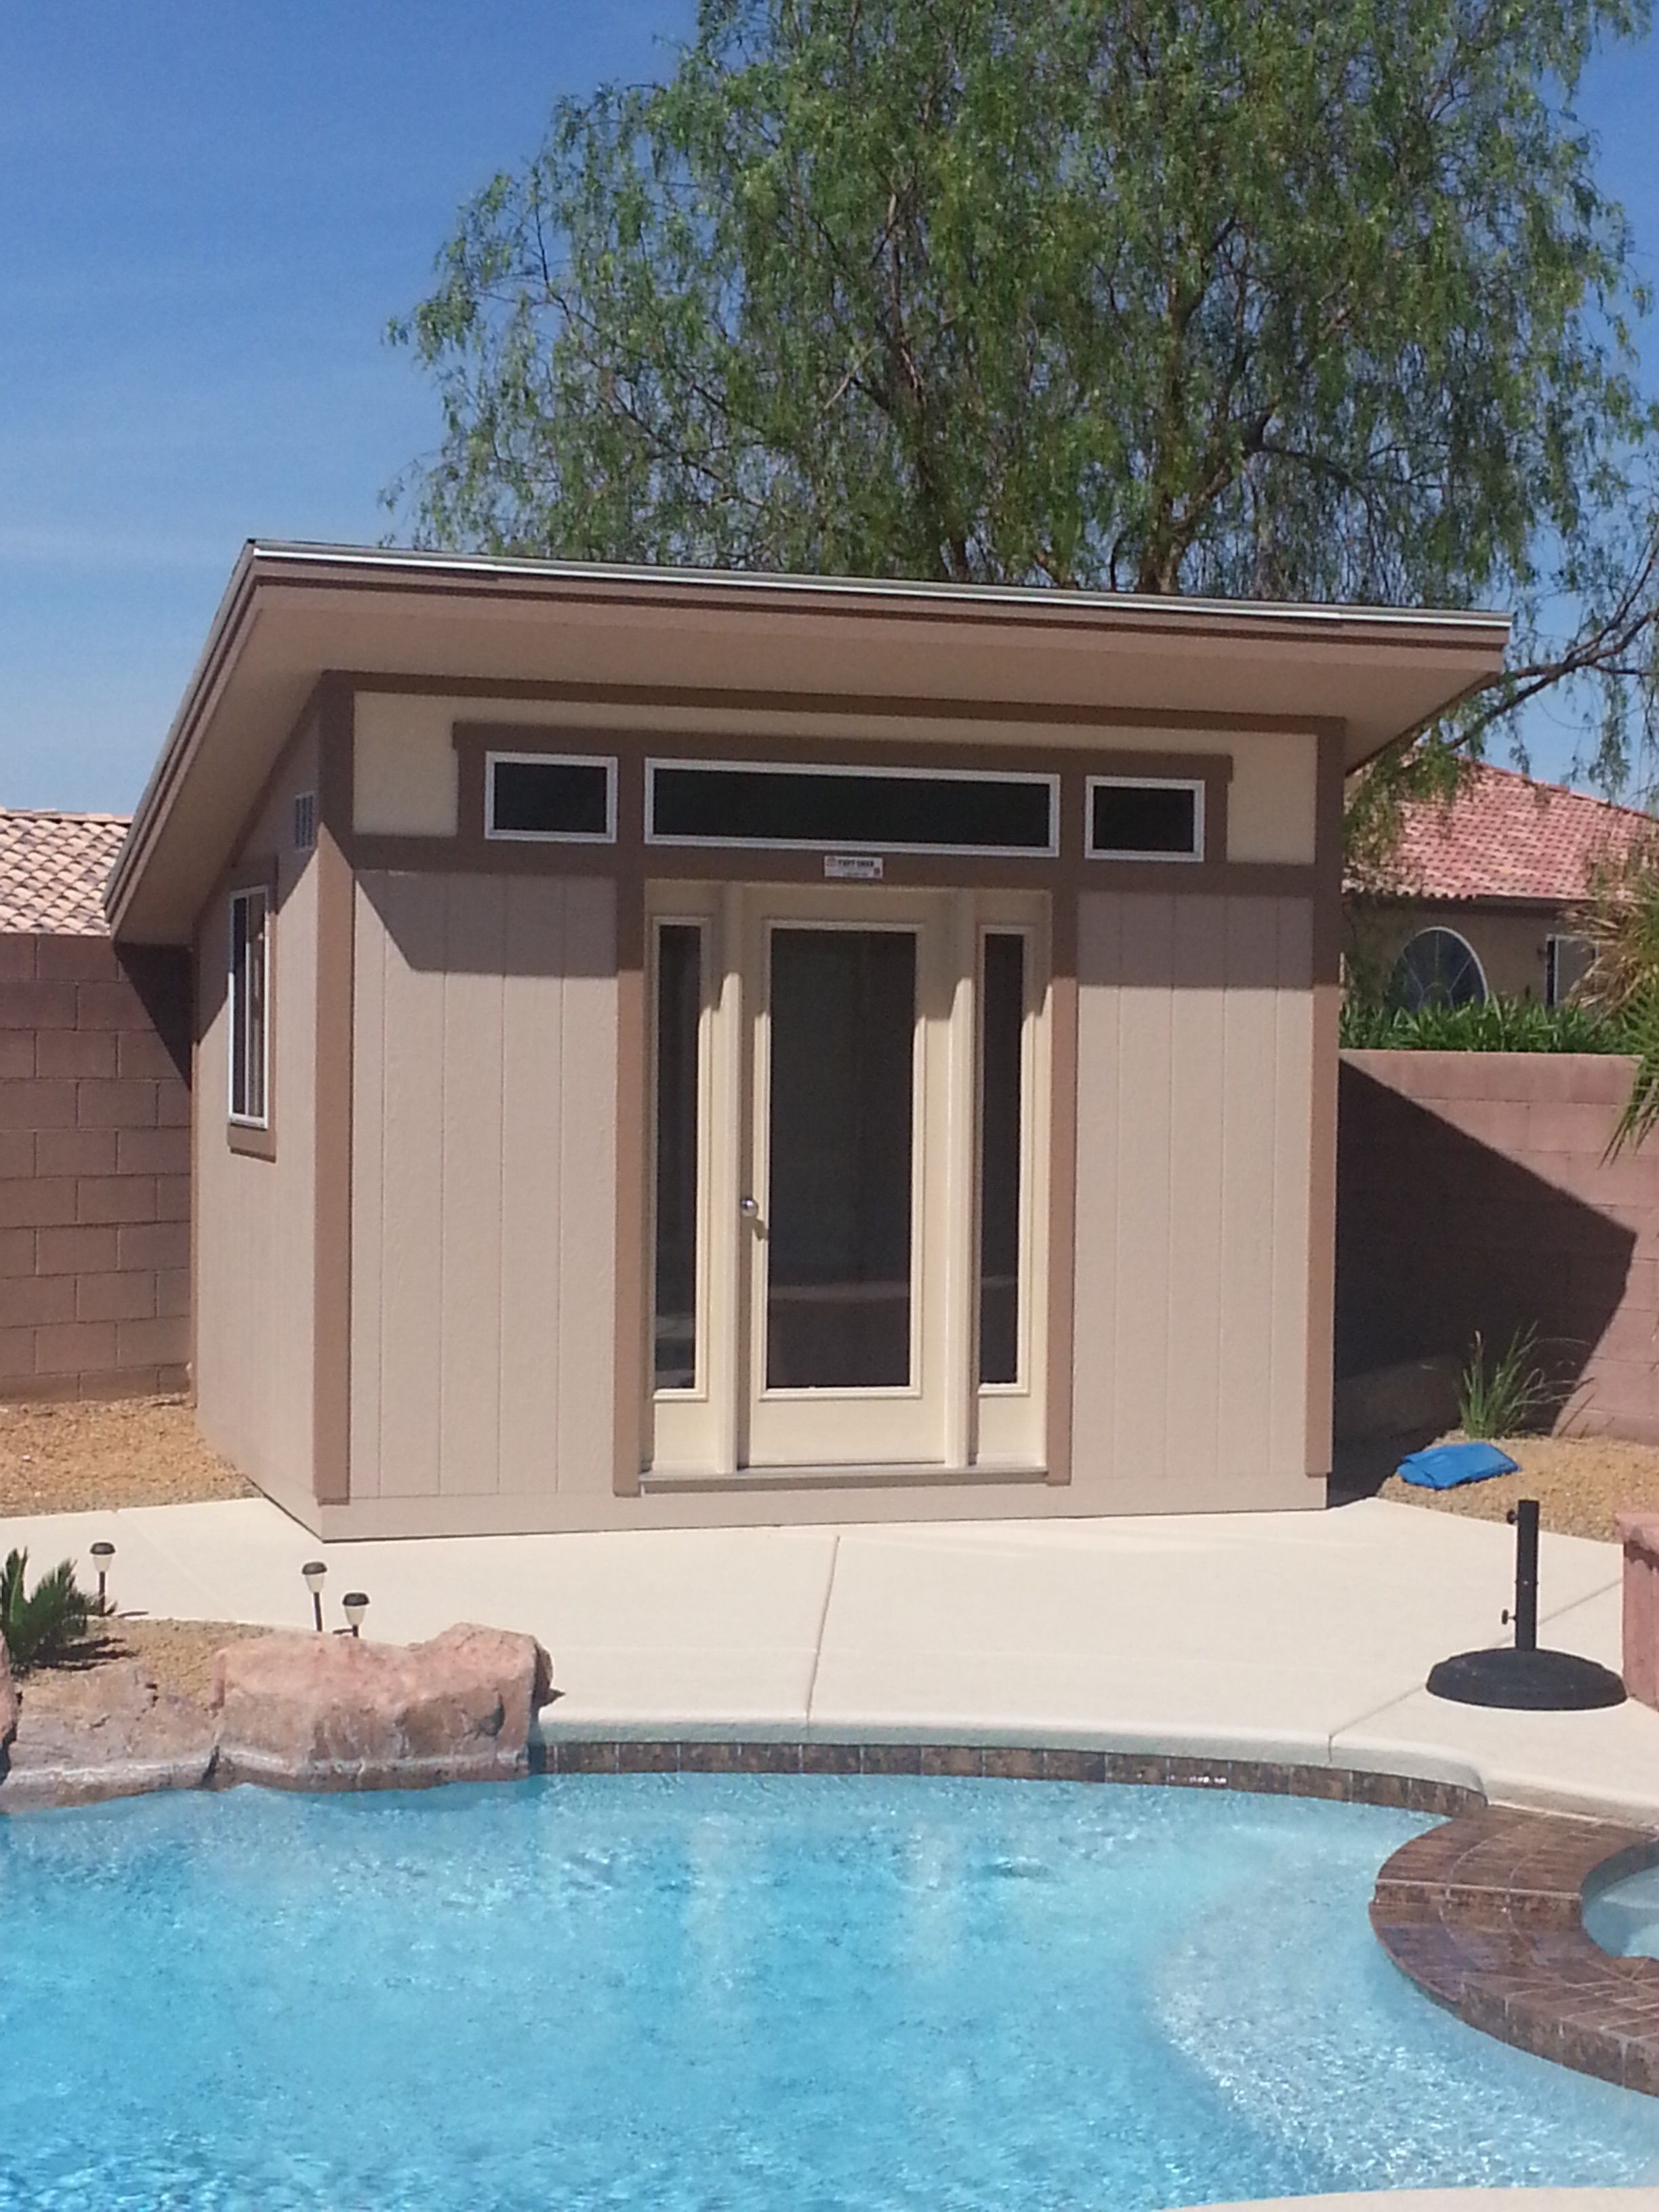 the perfect pool house storage and style to finish off your